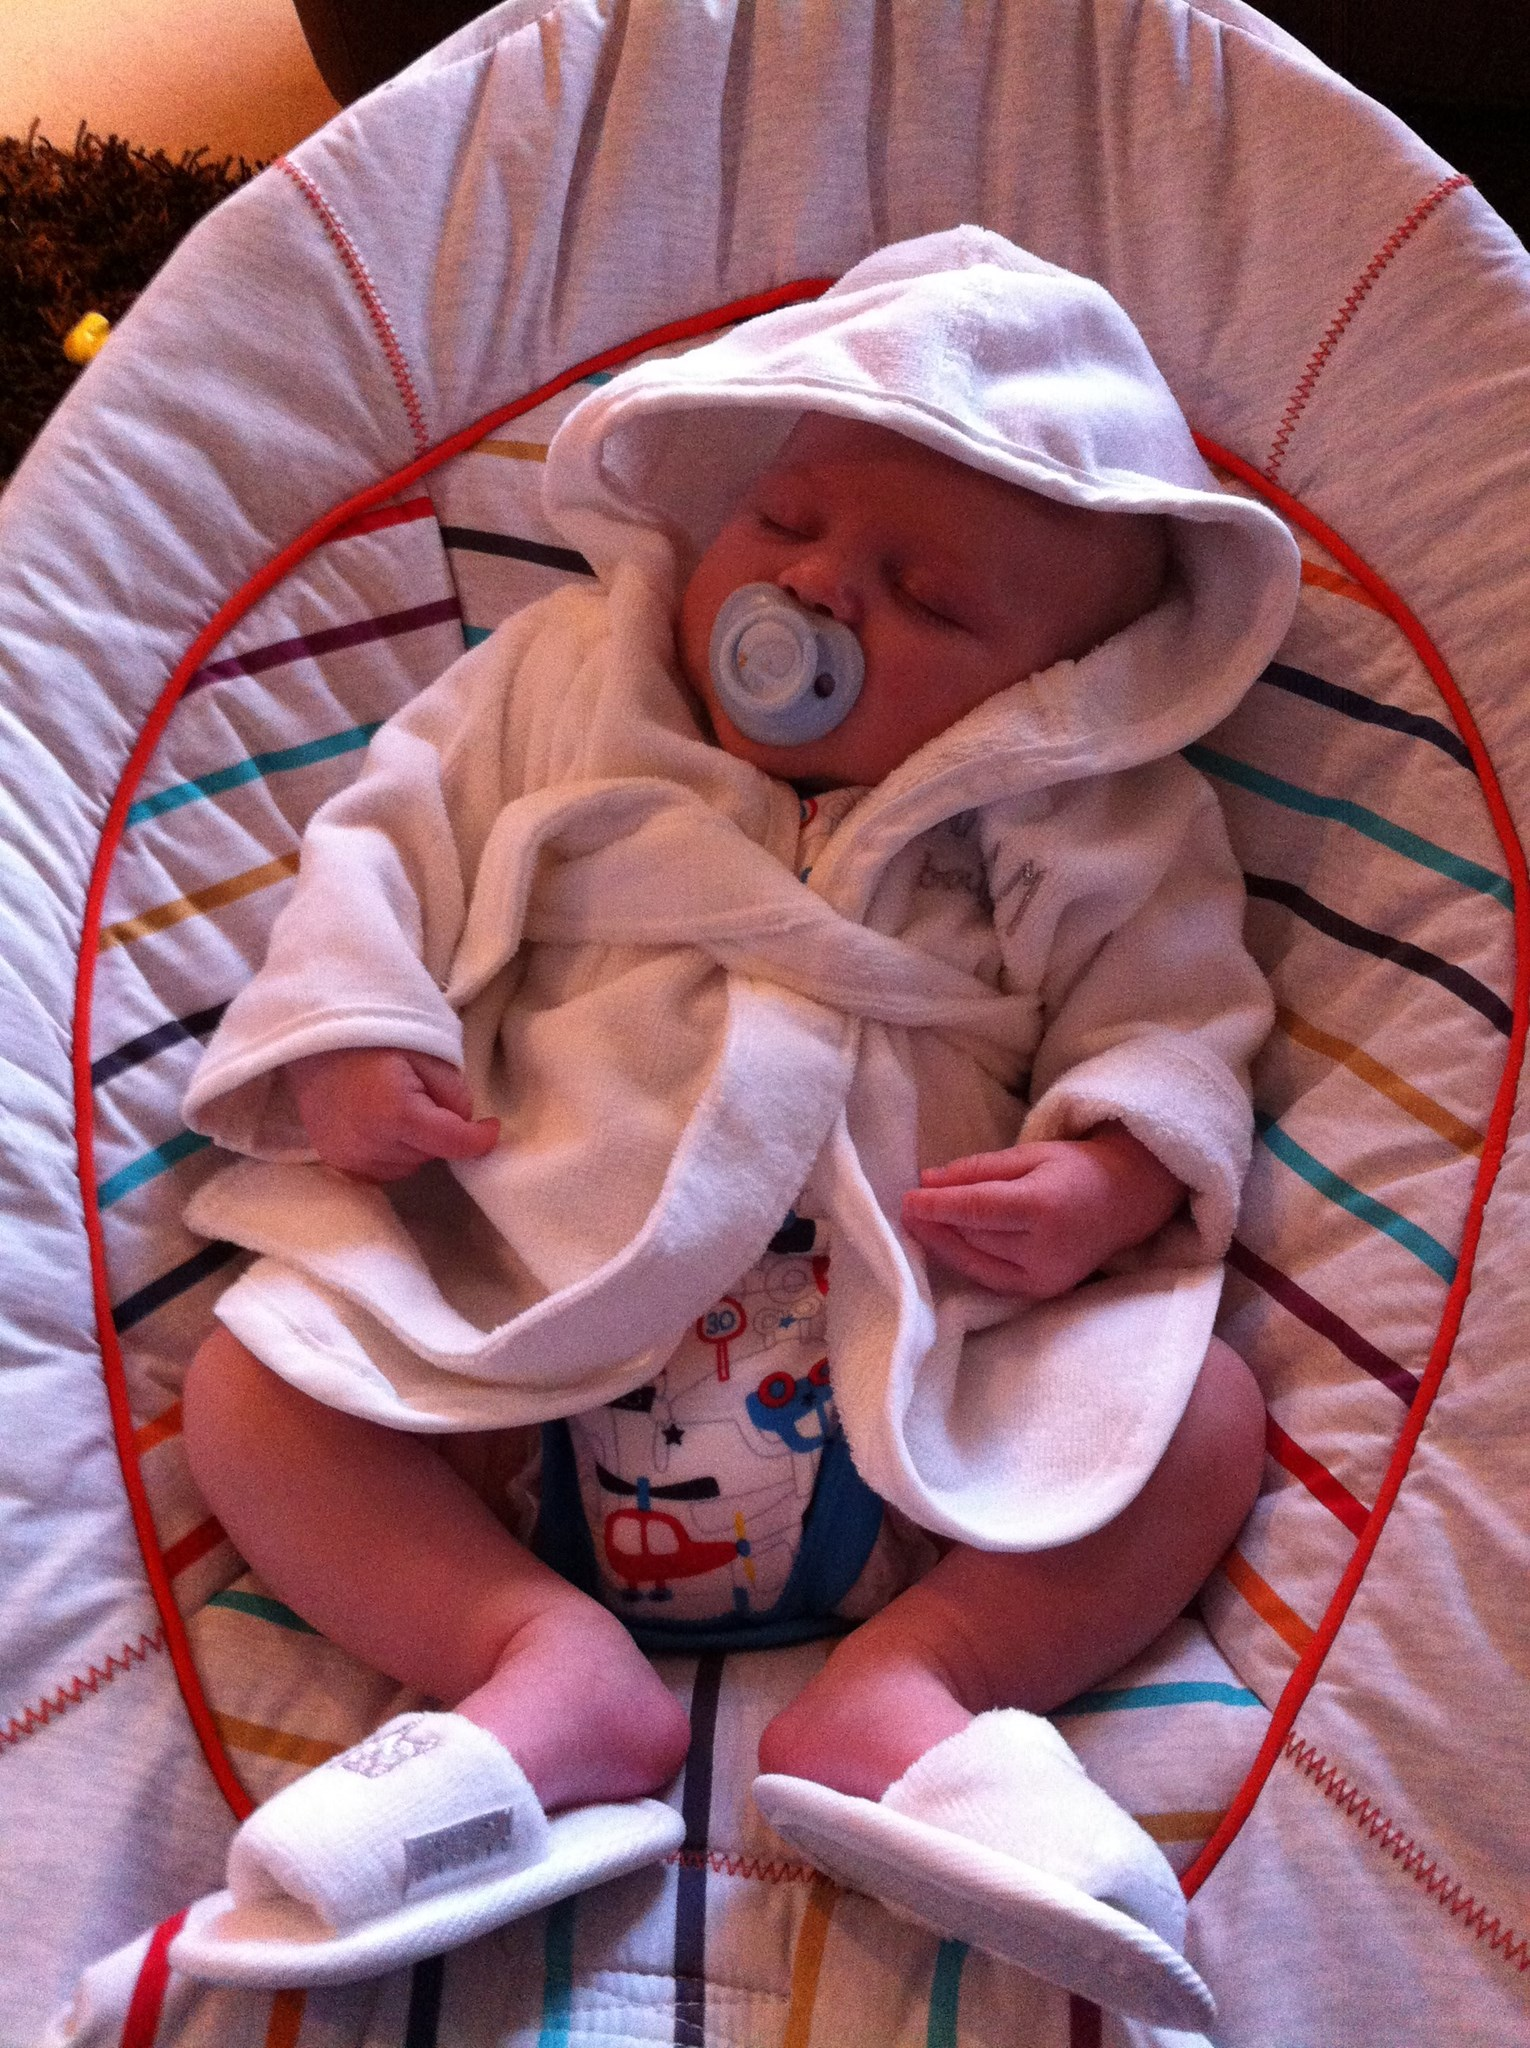 Henry having a nap in his robe and slippers, bought by friend  Shelly. December 2012